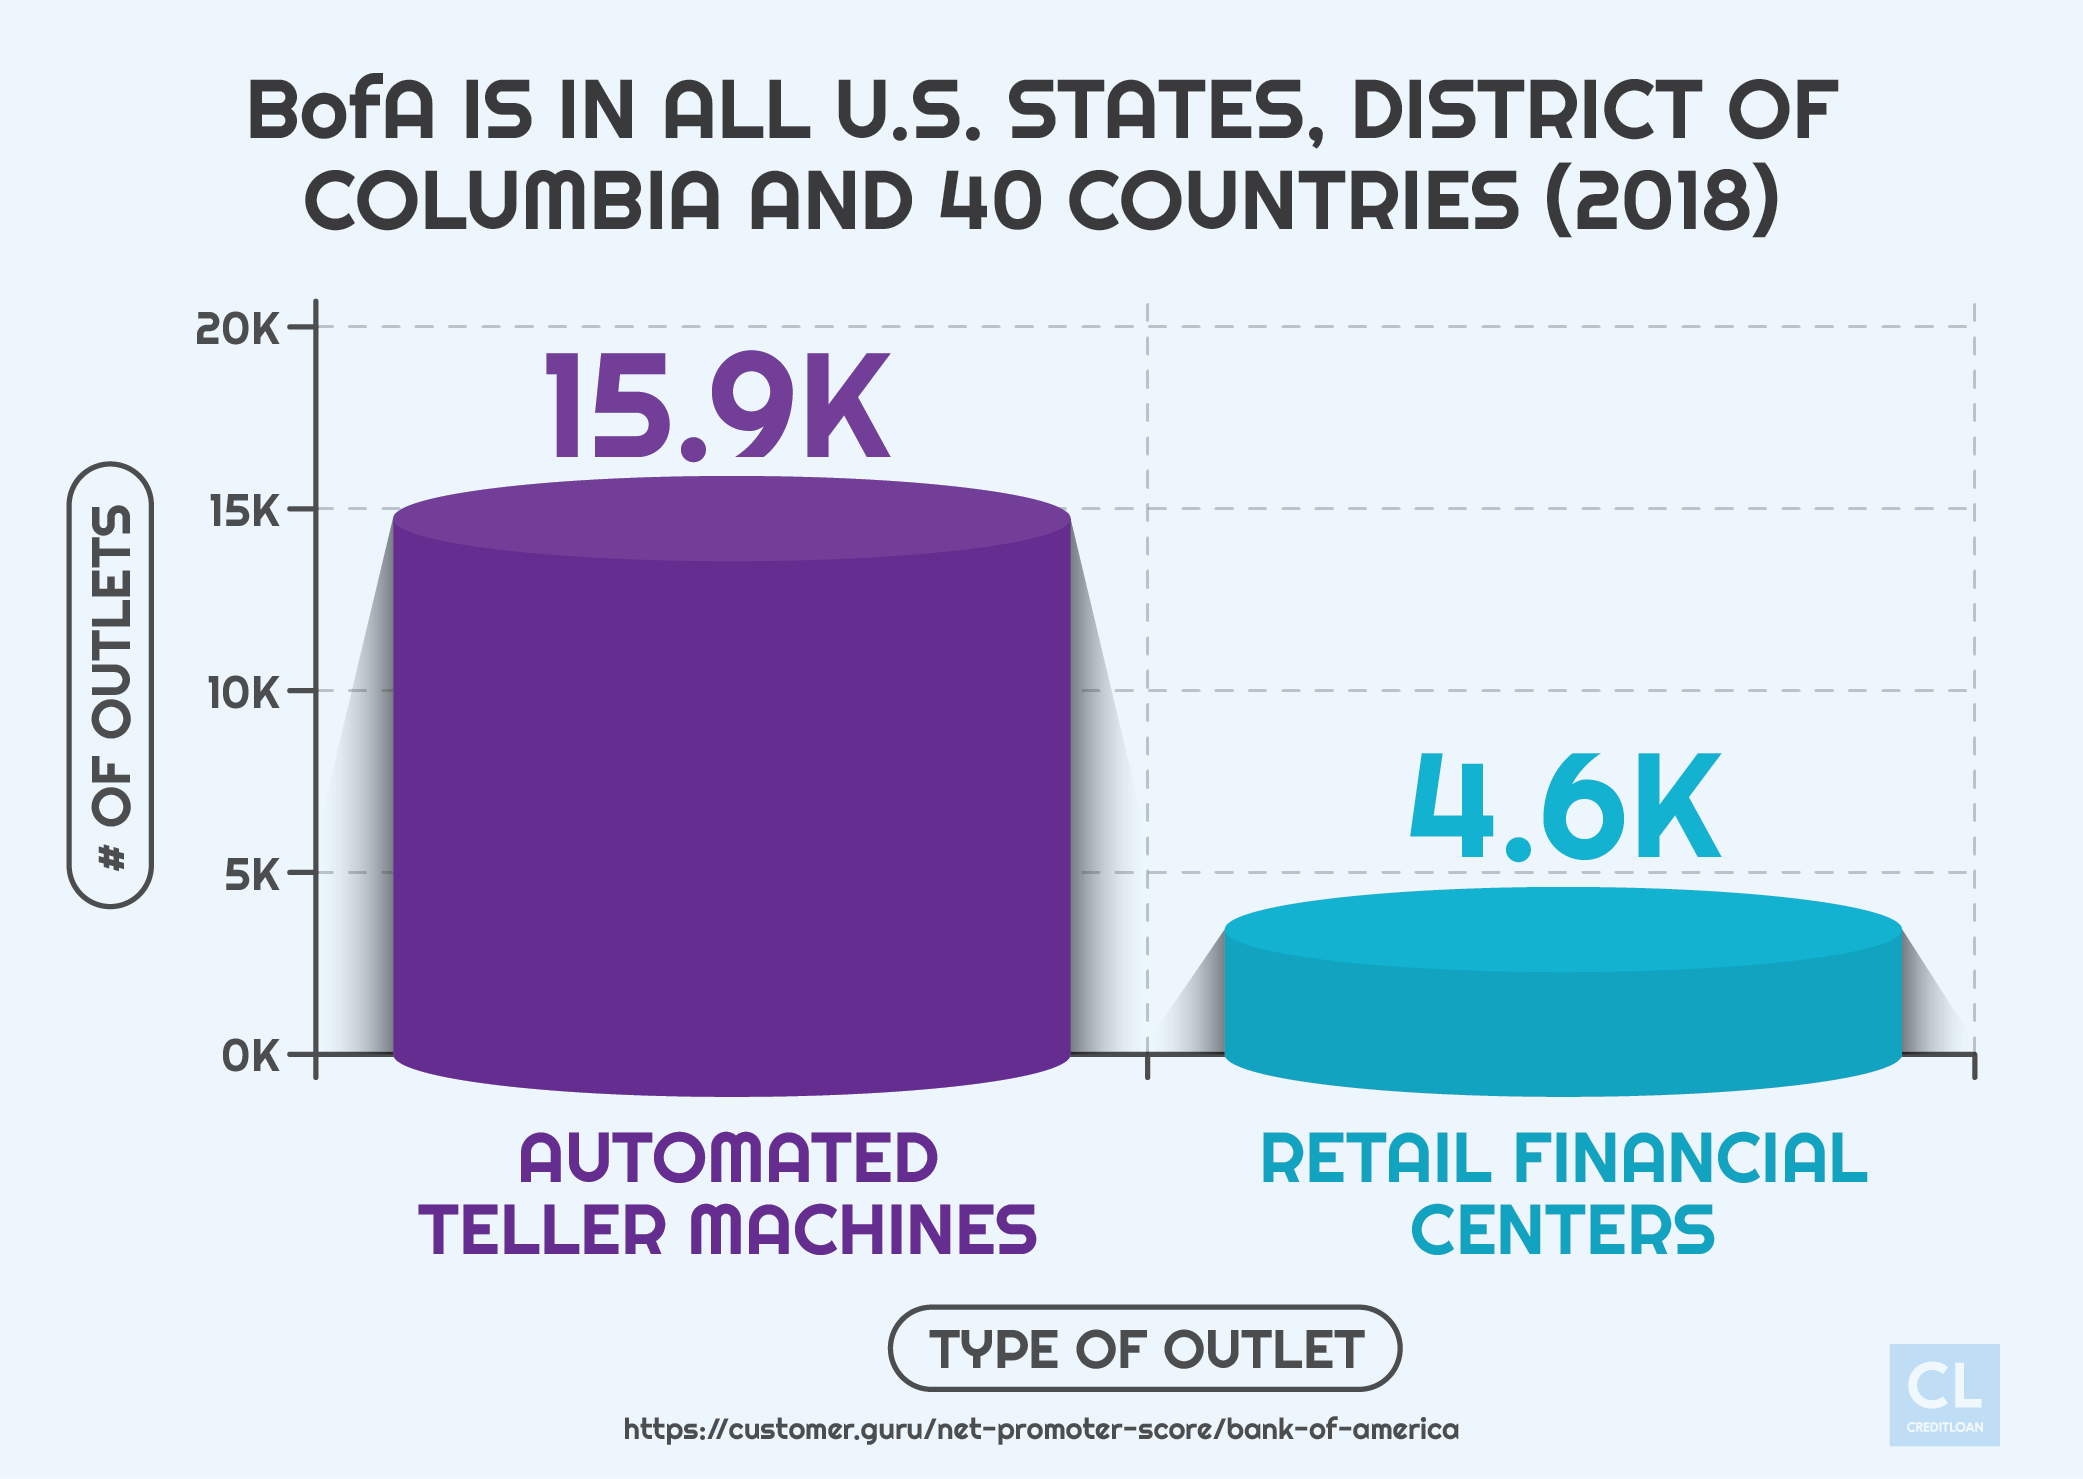 Data Showing BofA Number and Type of Outlets